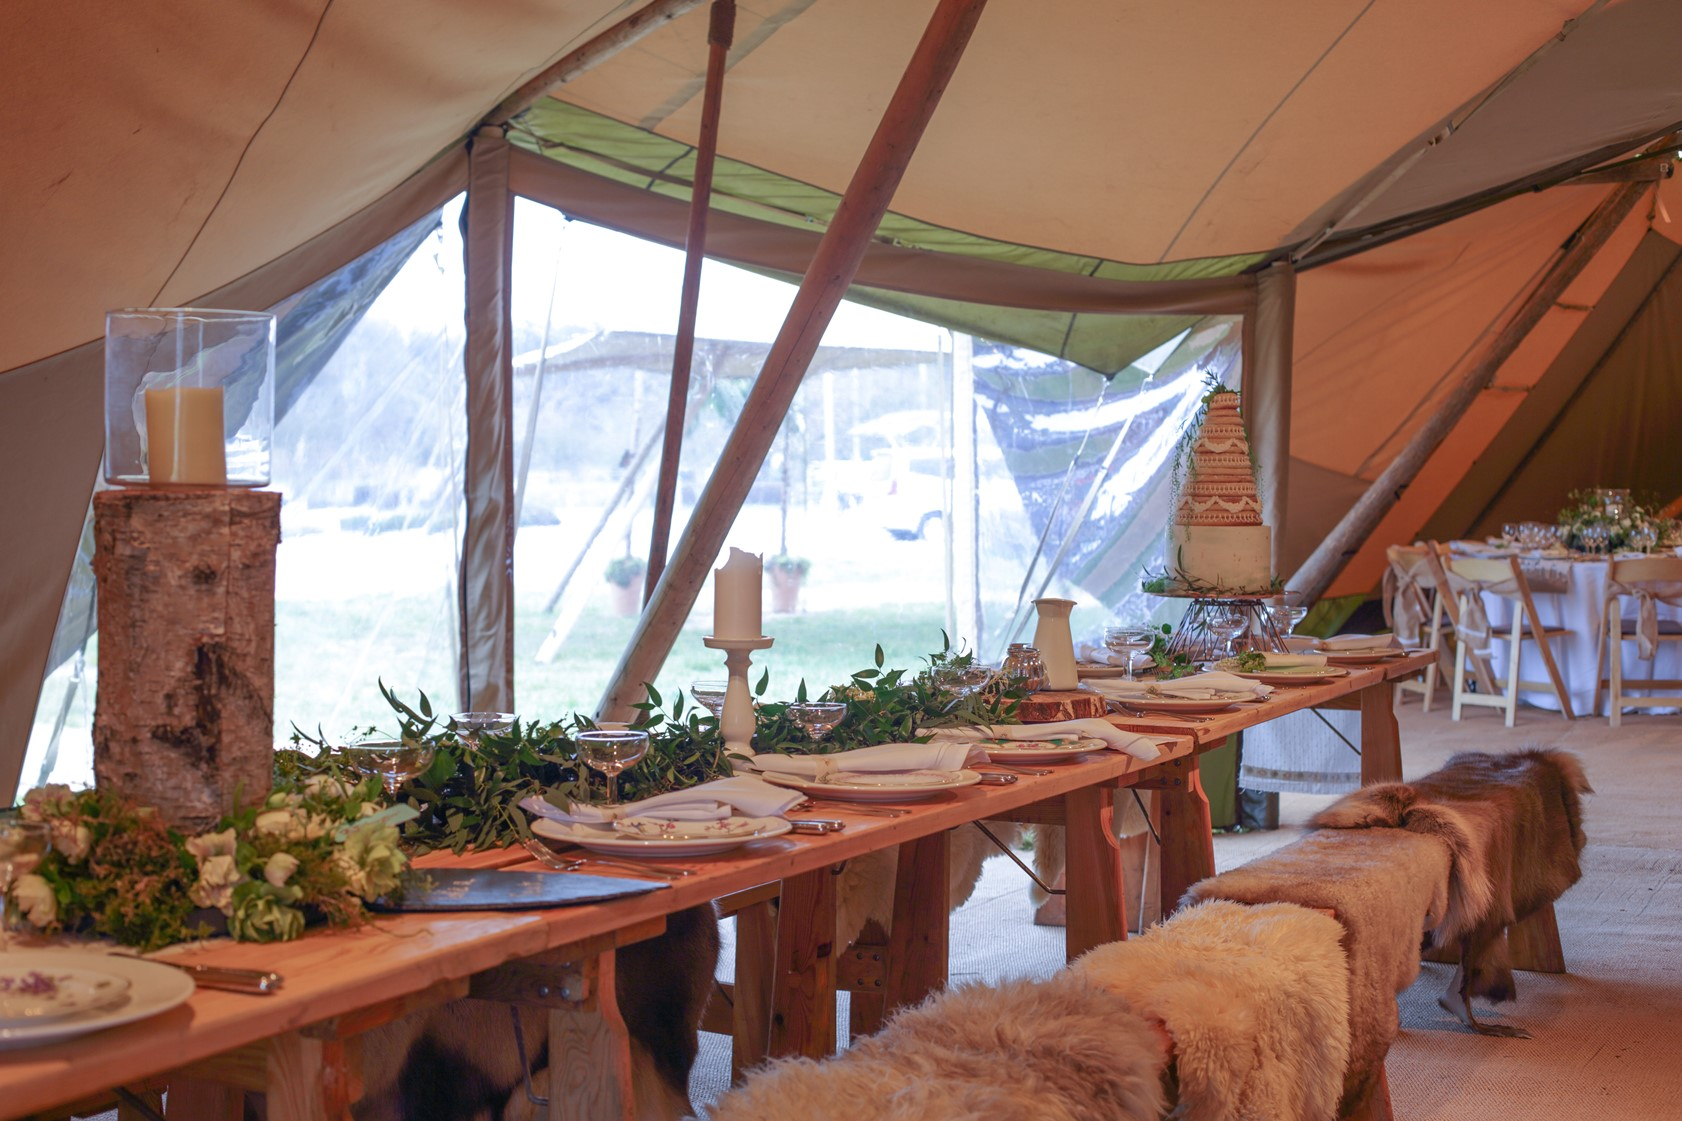 tipi benches with fur